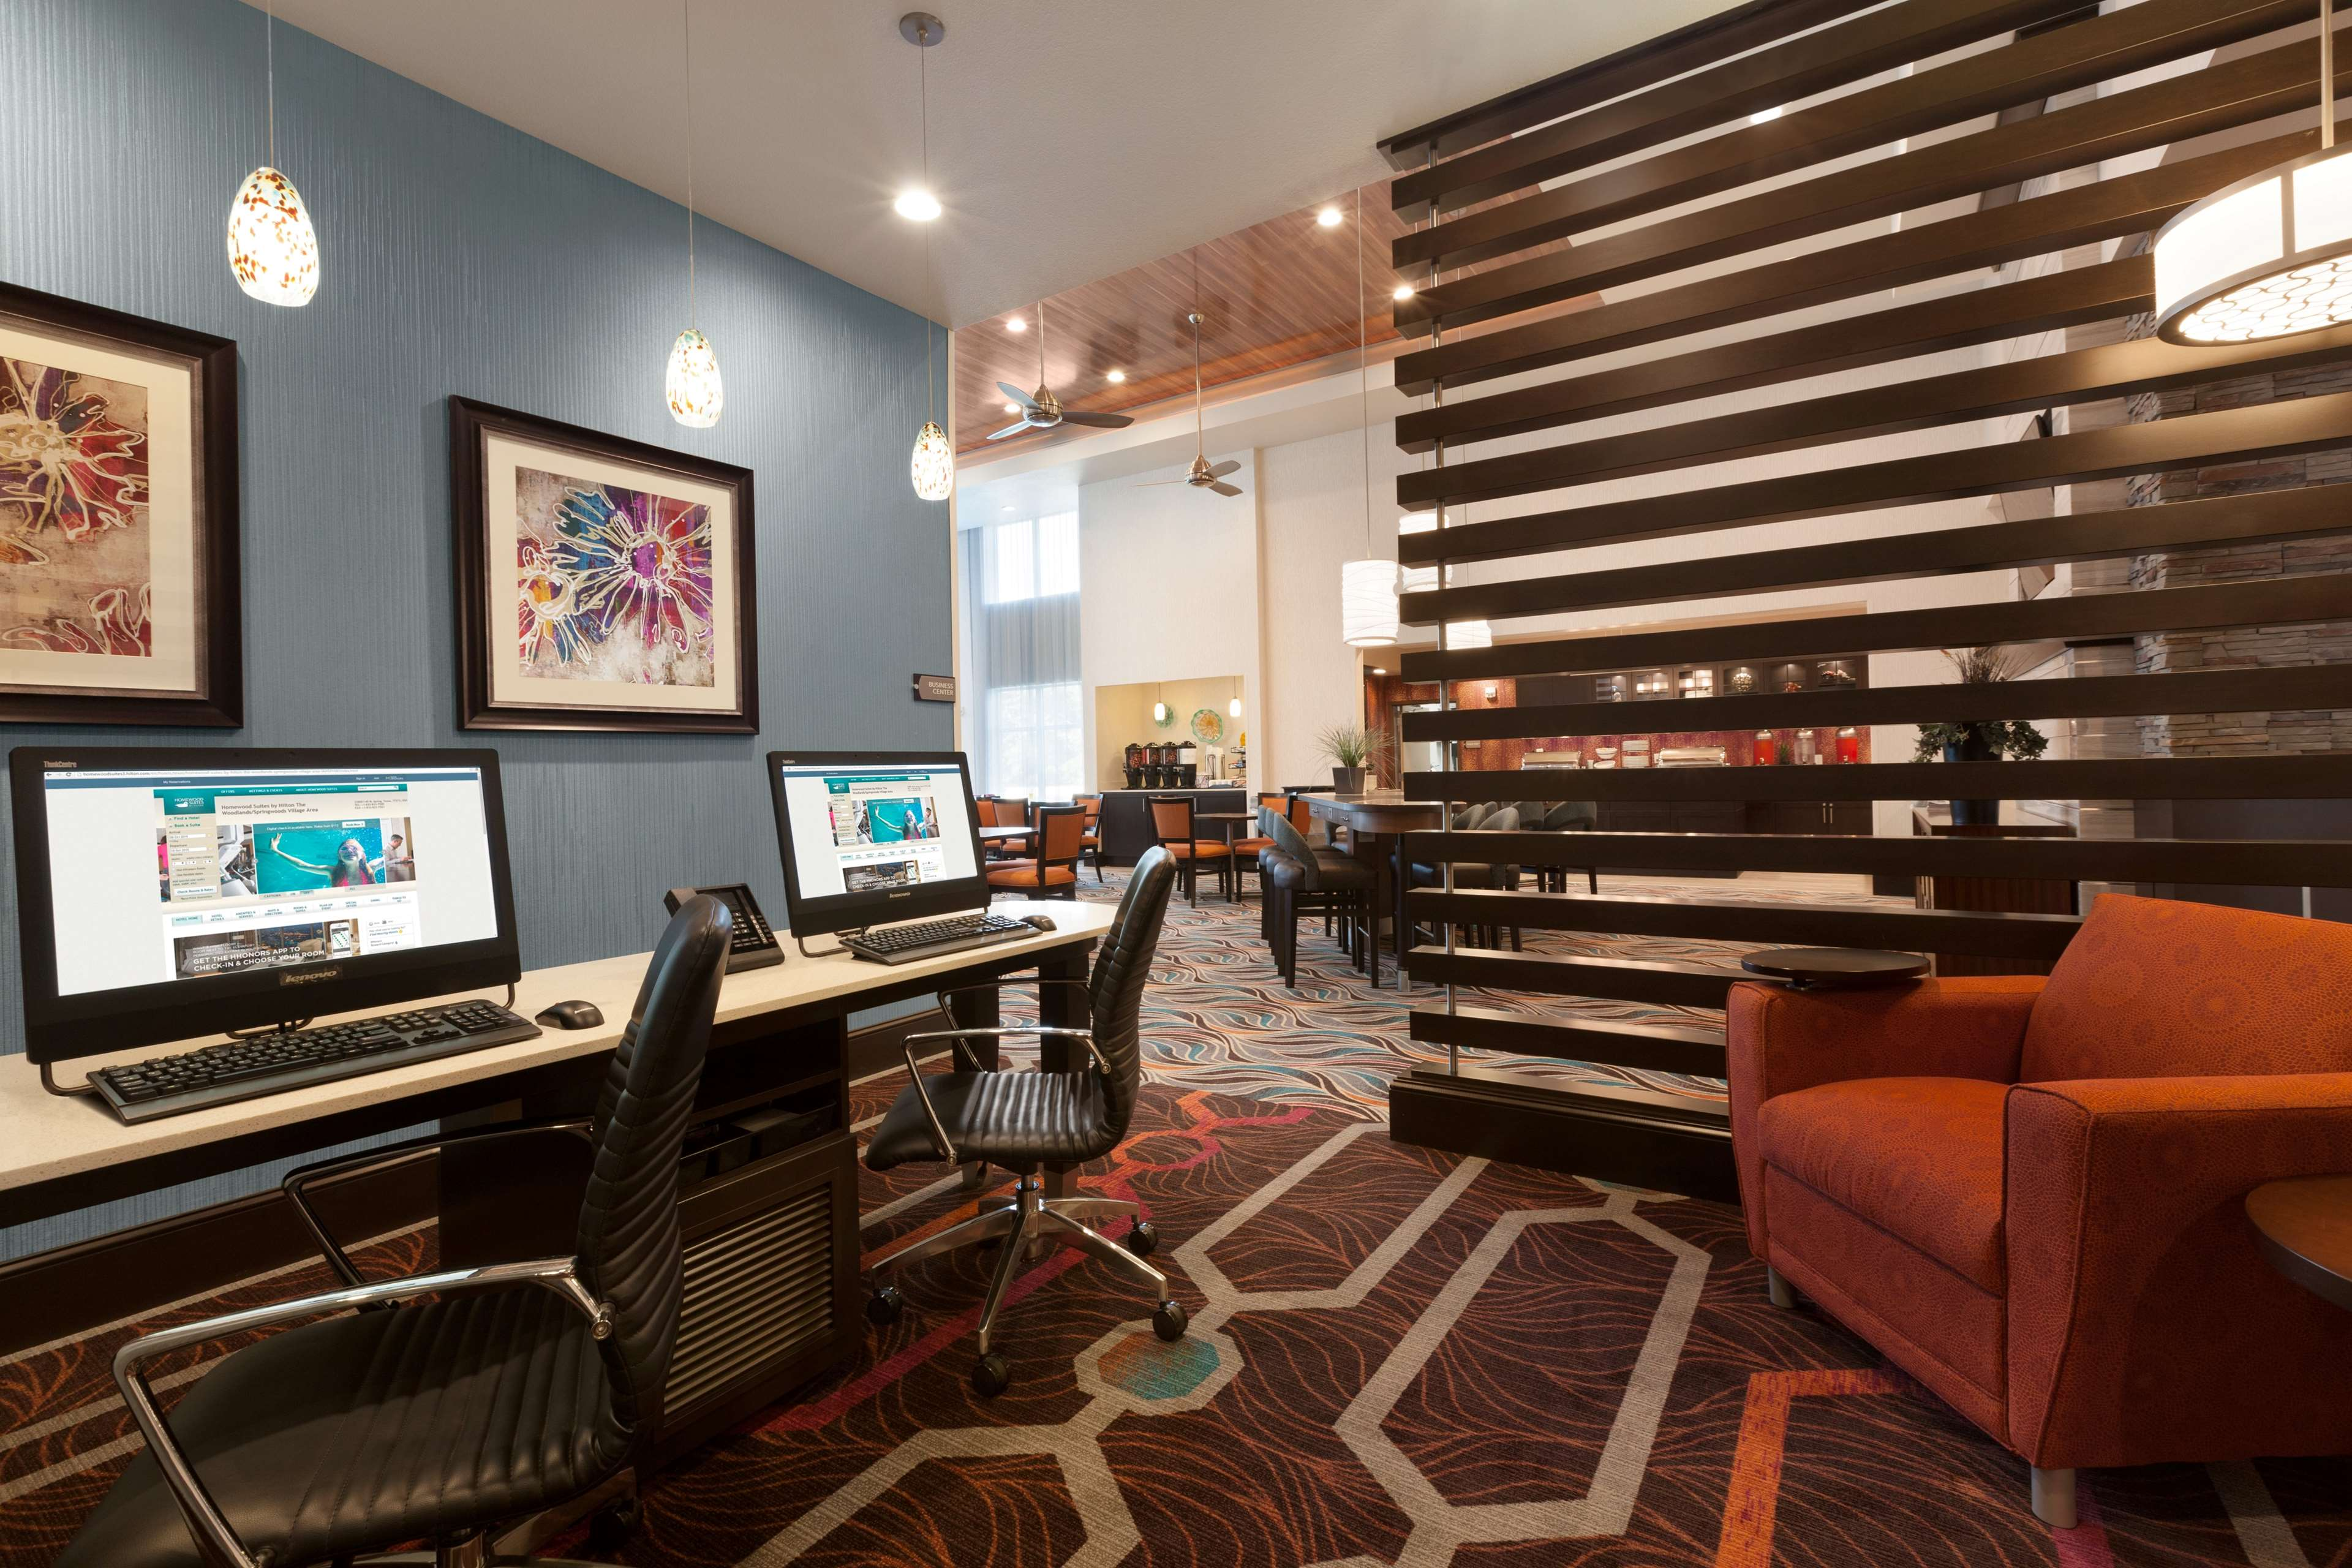 Homewood Suites by Hilton North Houston/Spring image 32